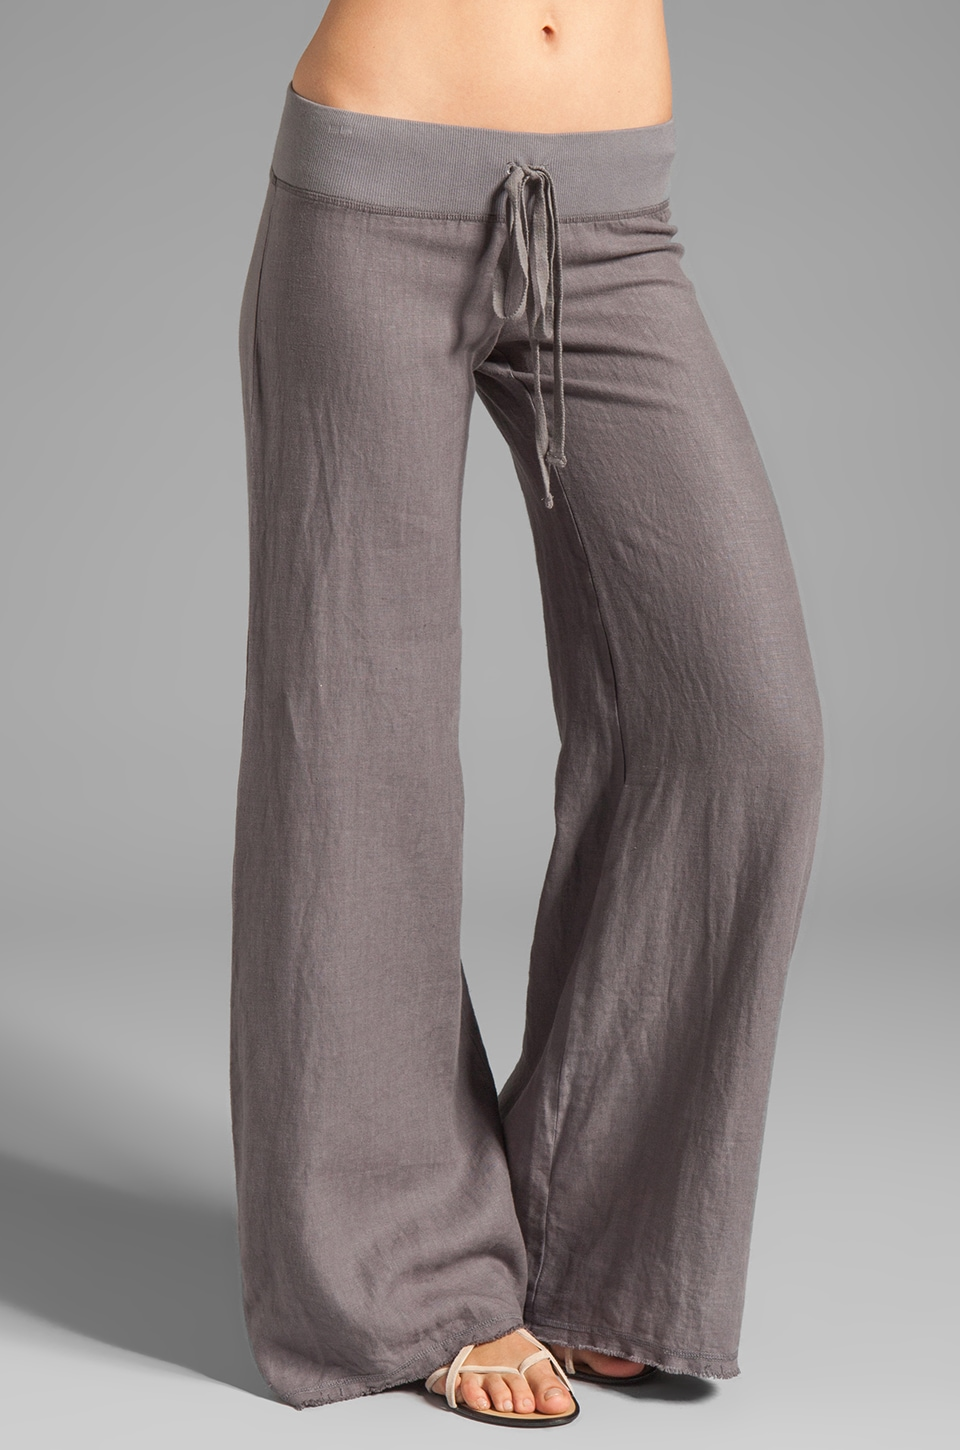 krisa Wide Leg Linen Pant in Carbon